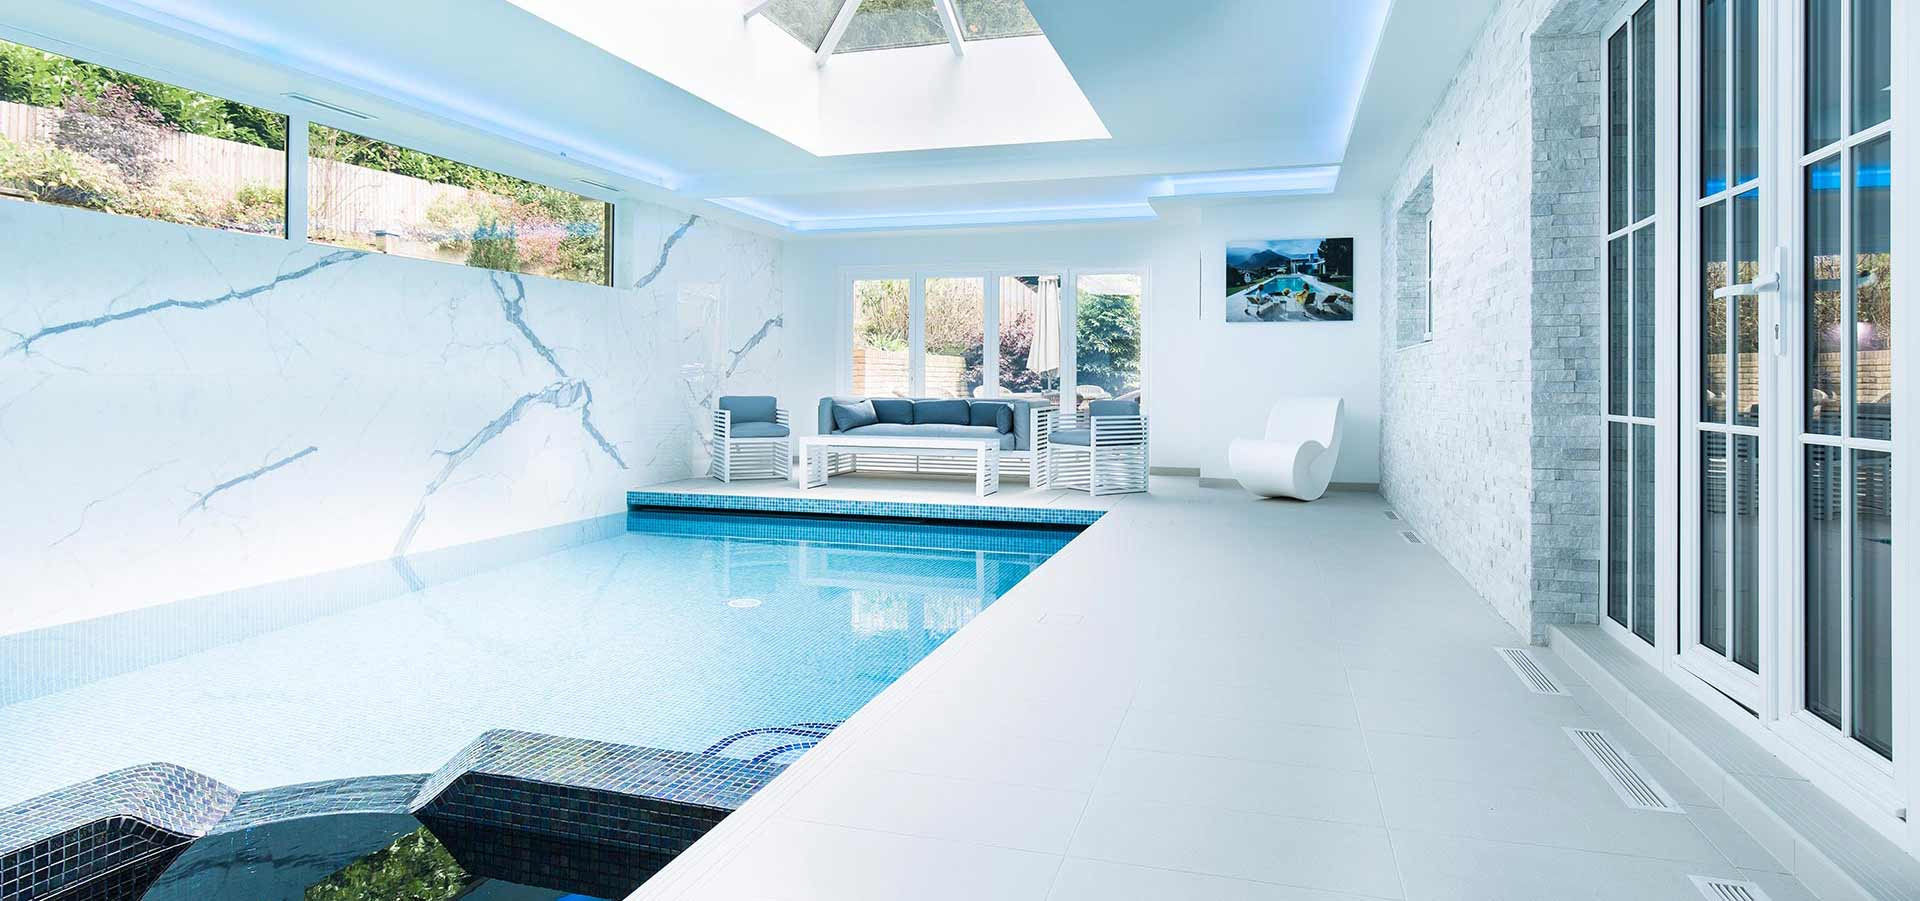 Bespoke Indoor Pool